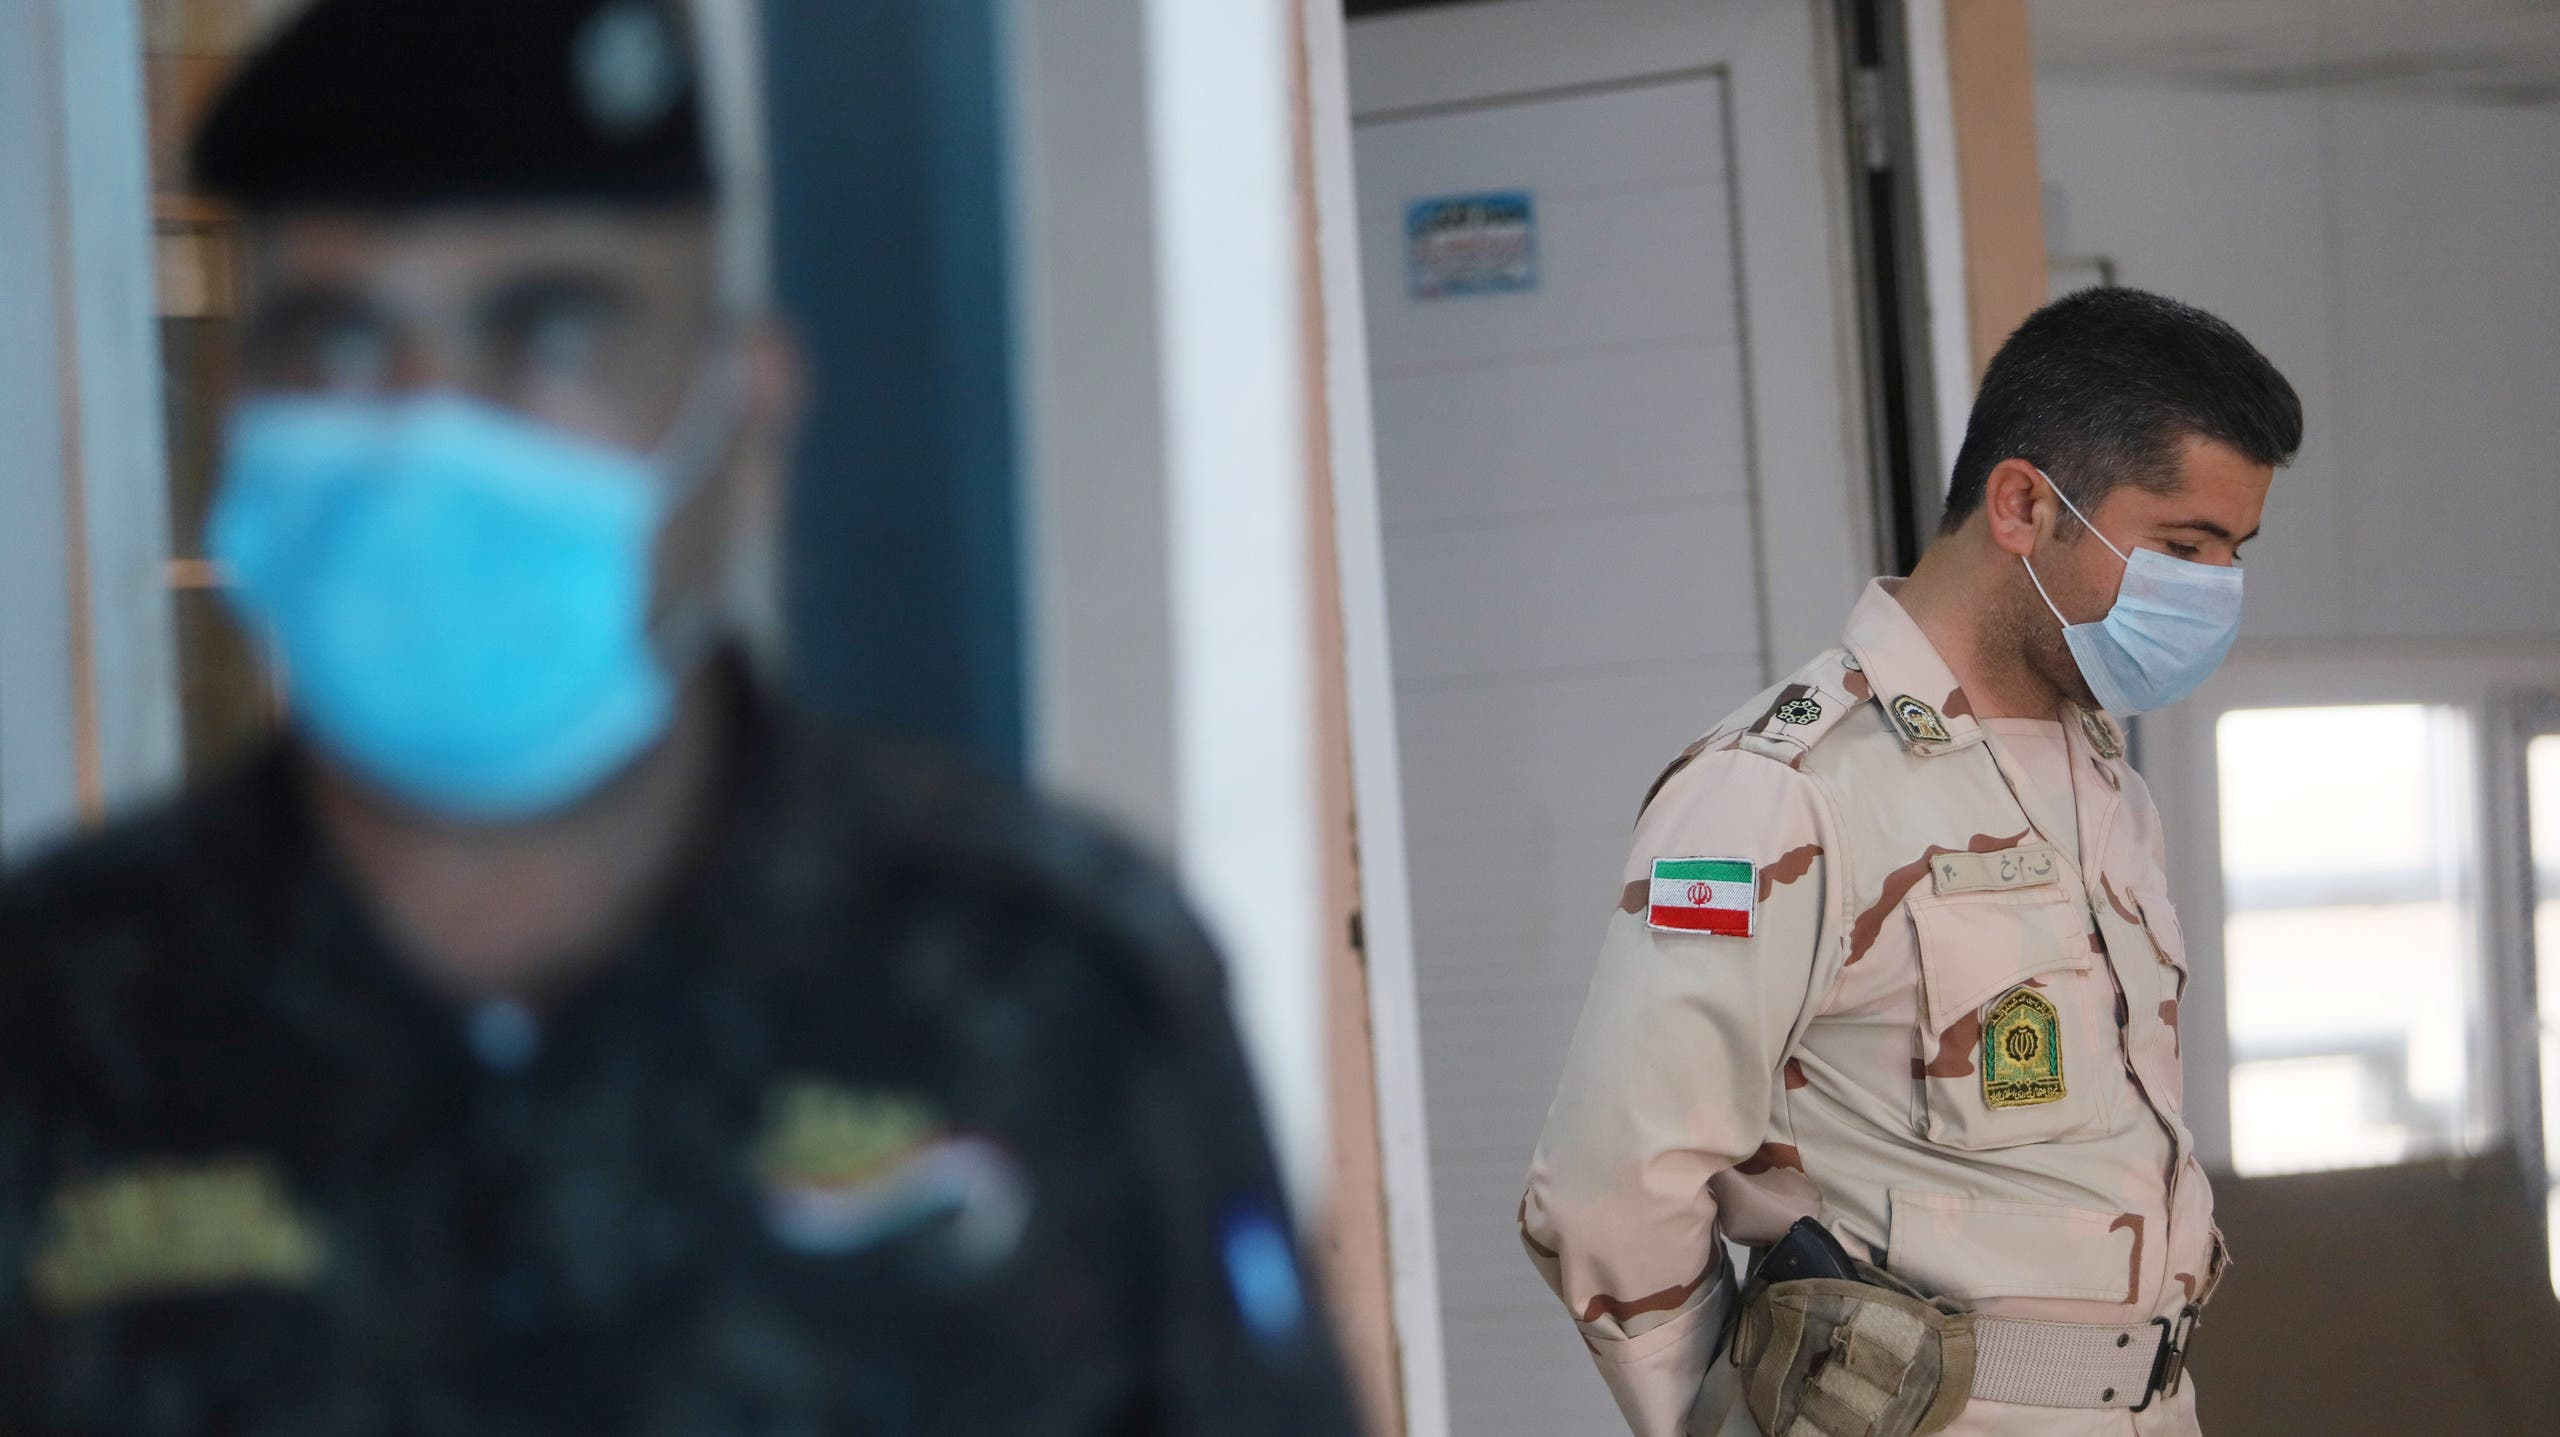 A member of Iranian Border Guards wears a protective face mask, finside the Shalamcha Border Crossing, after Iraq shut a border crossing to travelers between Iraq and Iran, Iraq. (File photo: Reuters)